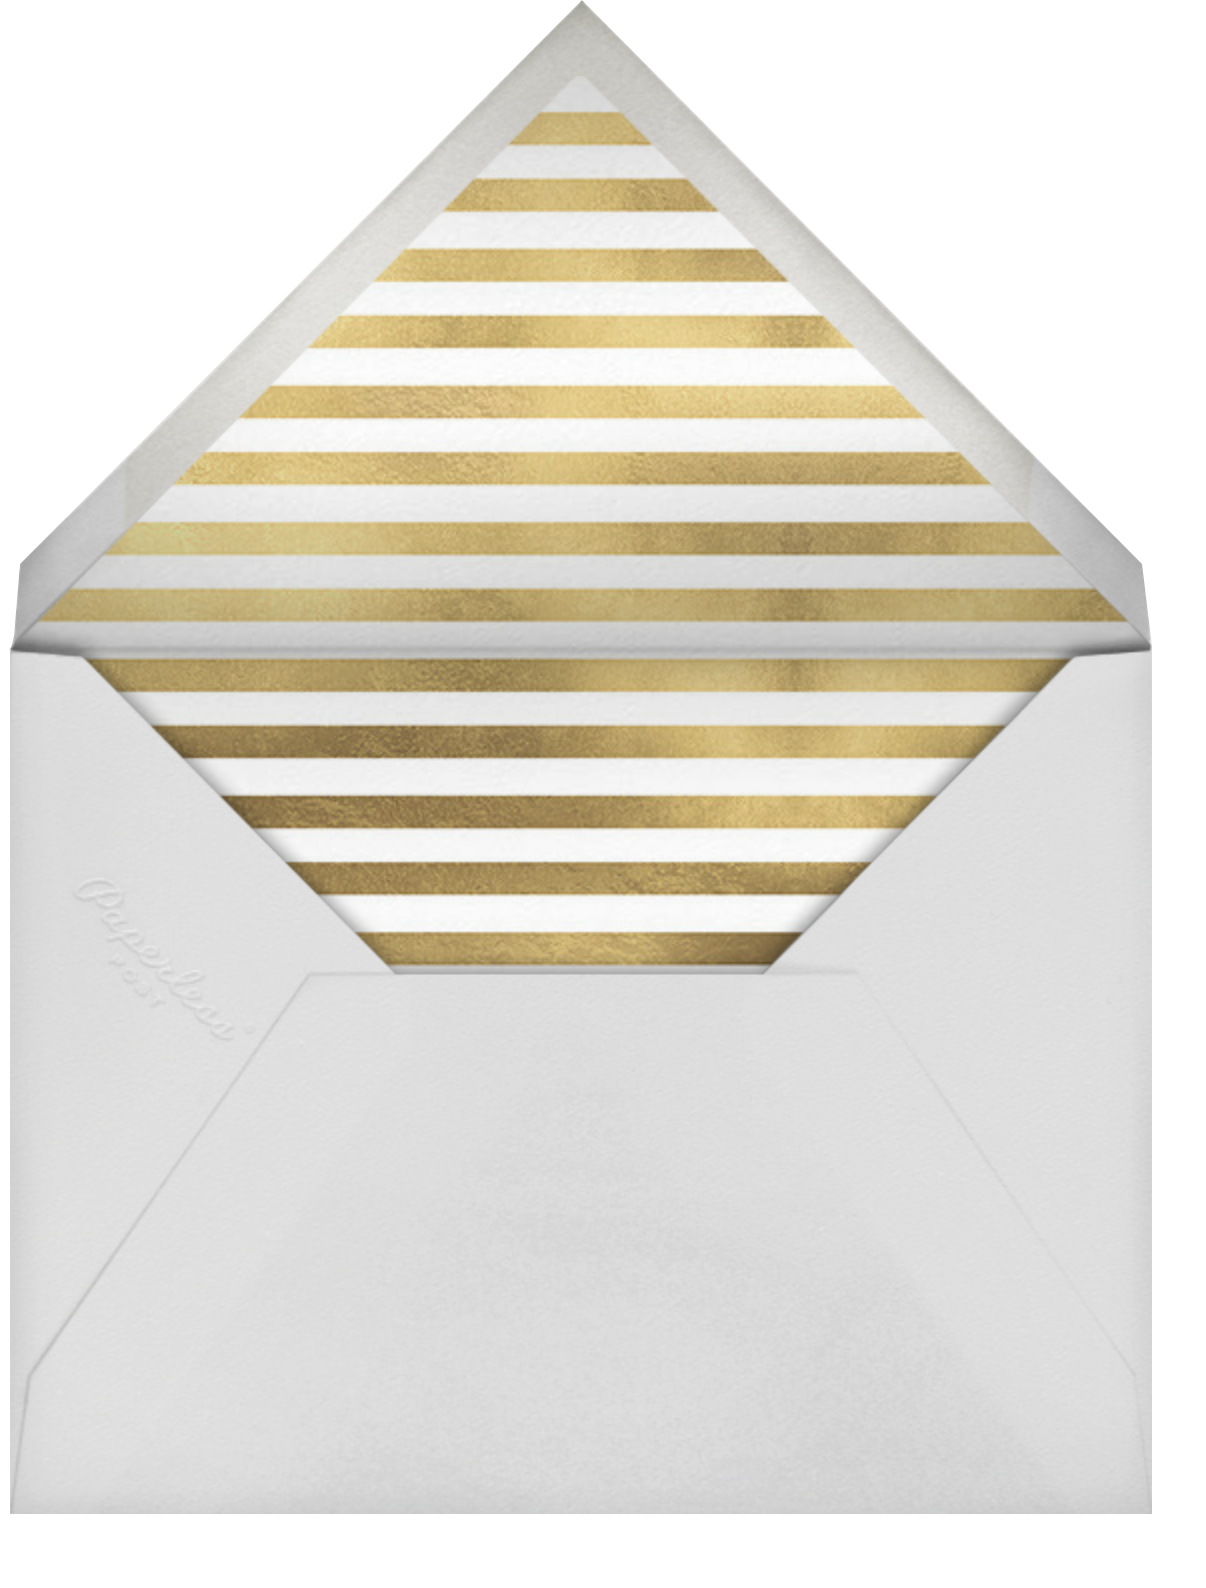 Confetti (Invitation) - White/Gold - kate spade new york - All - envelope back